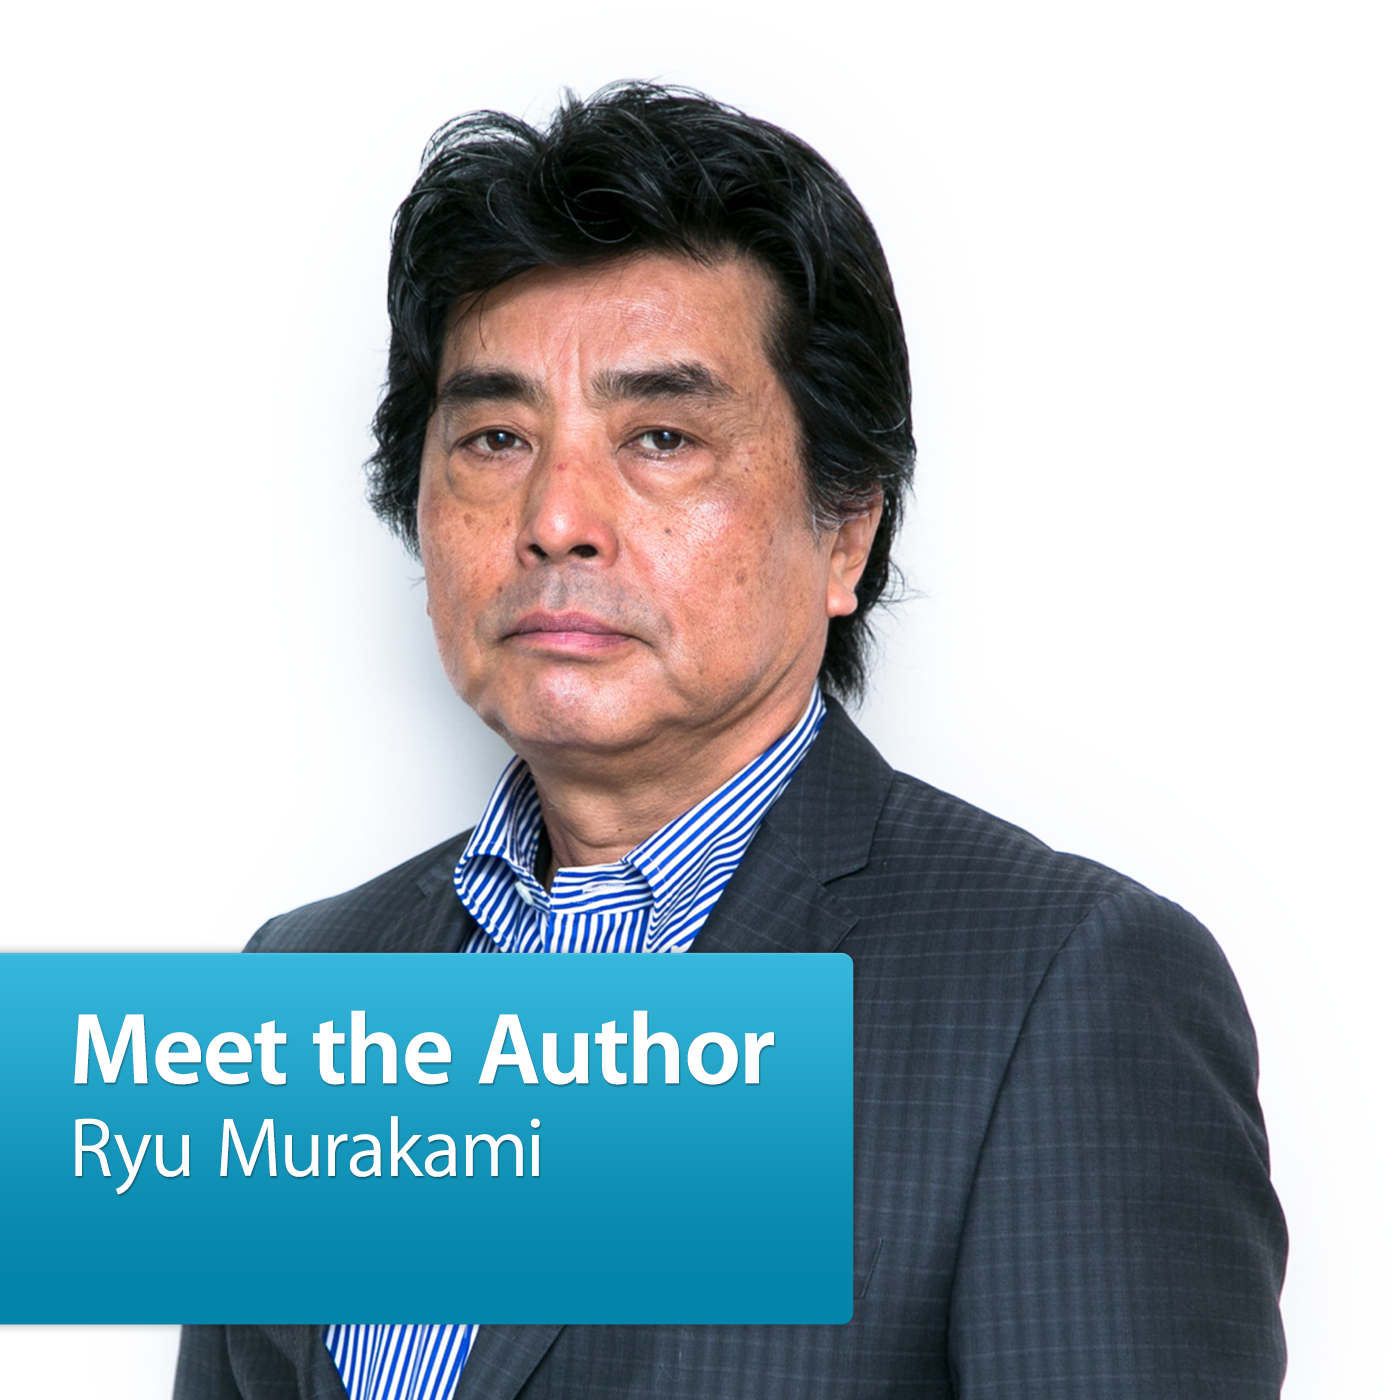 Ryu Murakami: Meet the Author